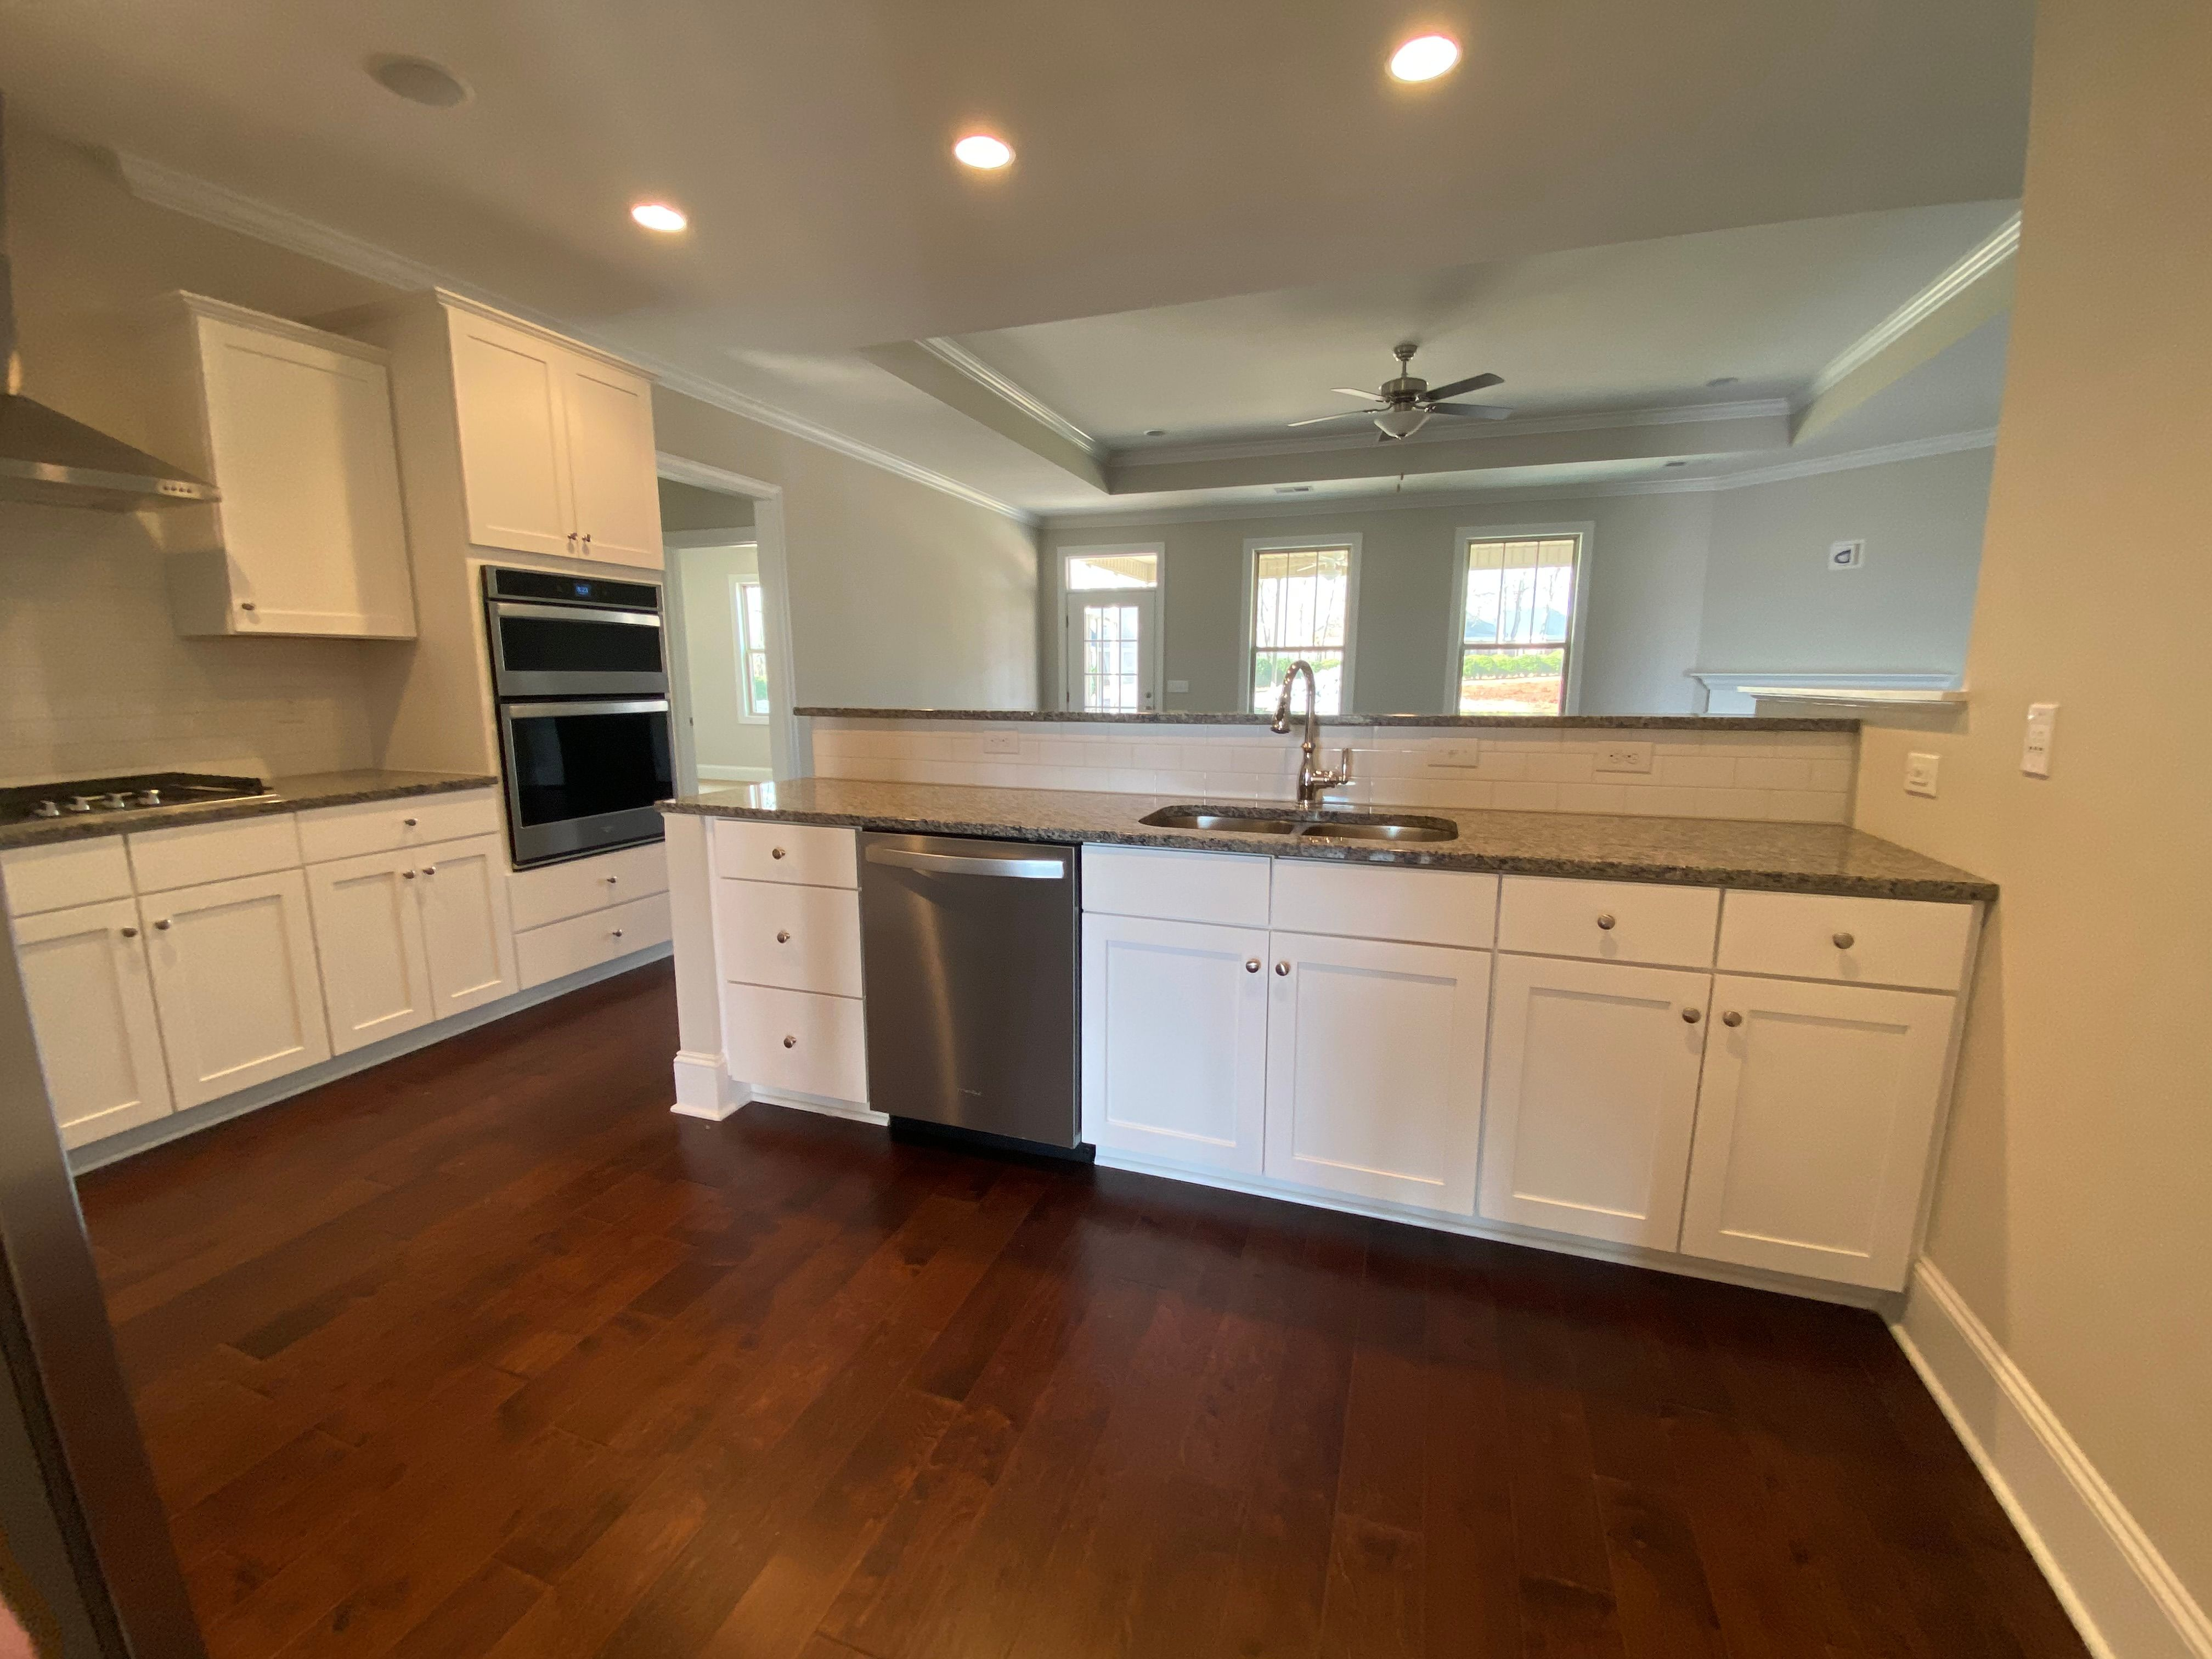 Kitchen featured in the Edisto II C6 By Great Southern Homes in Greenville-Spartanburg, SC